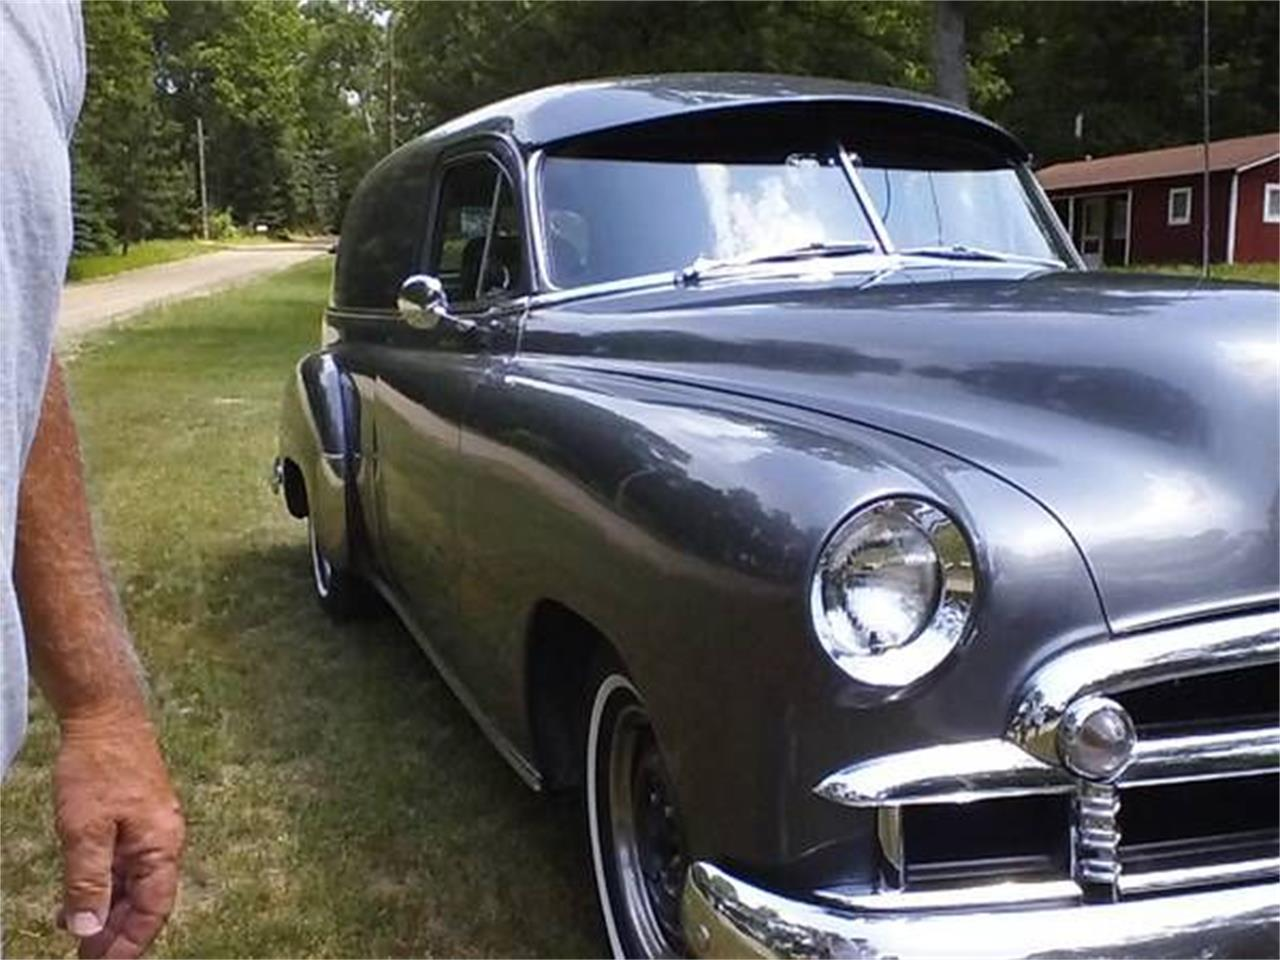 For Sale: 1950 Chevrolet Sedan Delivery in Cadillac, Michigan